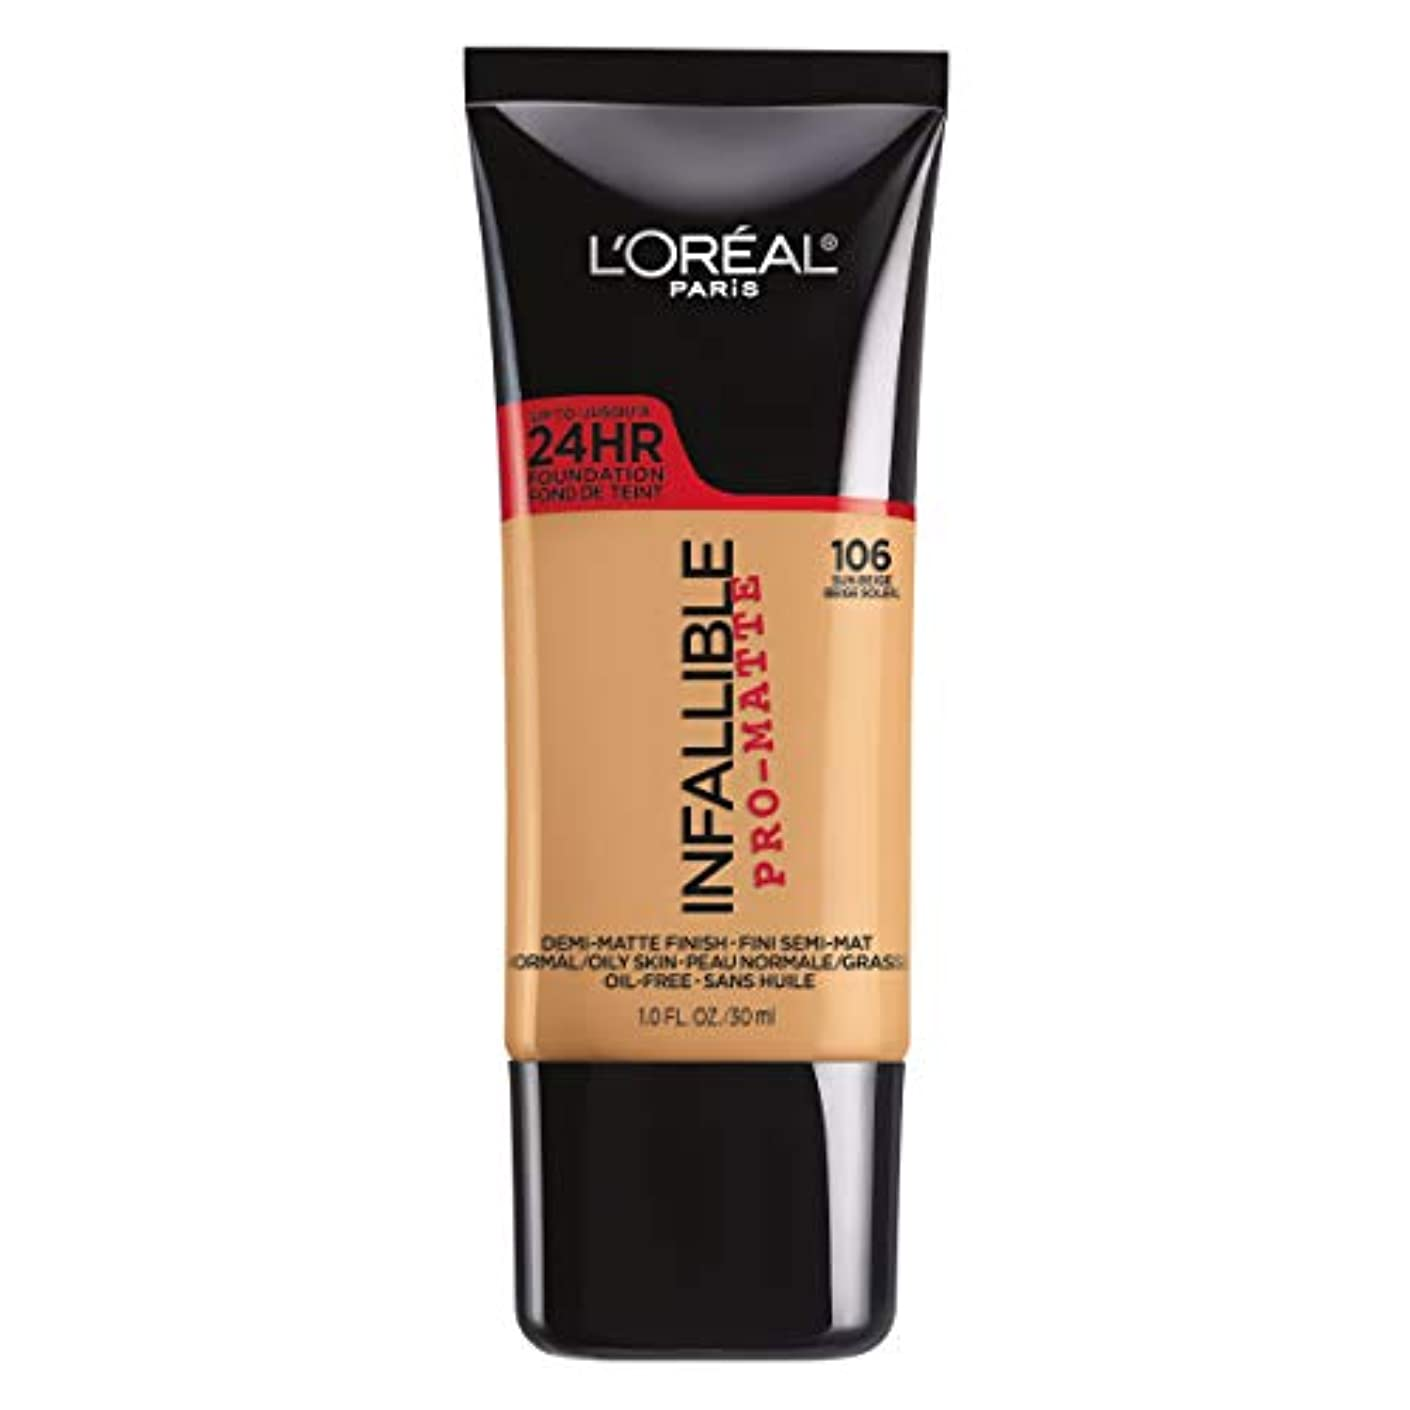 お風呂を持っているベイビー名詞L'Oreal Paris Infallible Pro-Matte Foundation Makeup, 106 Sun Beige, 1 fl. oz[並行輸入品]